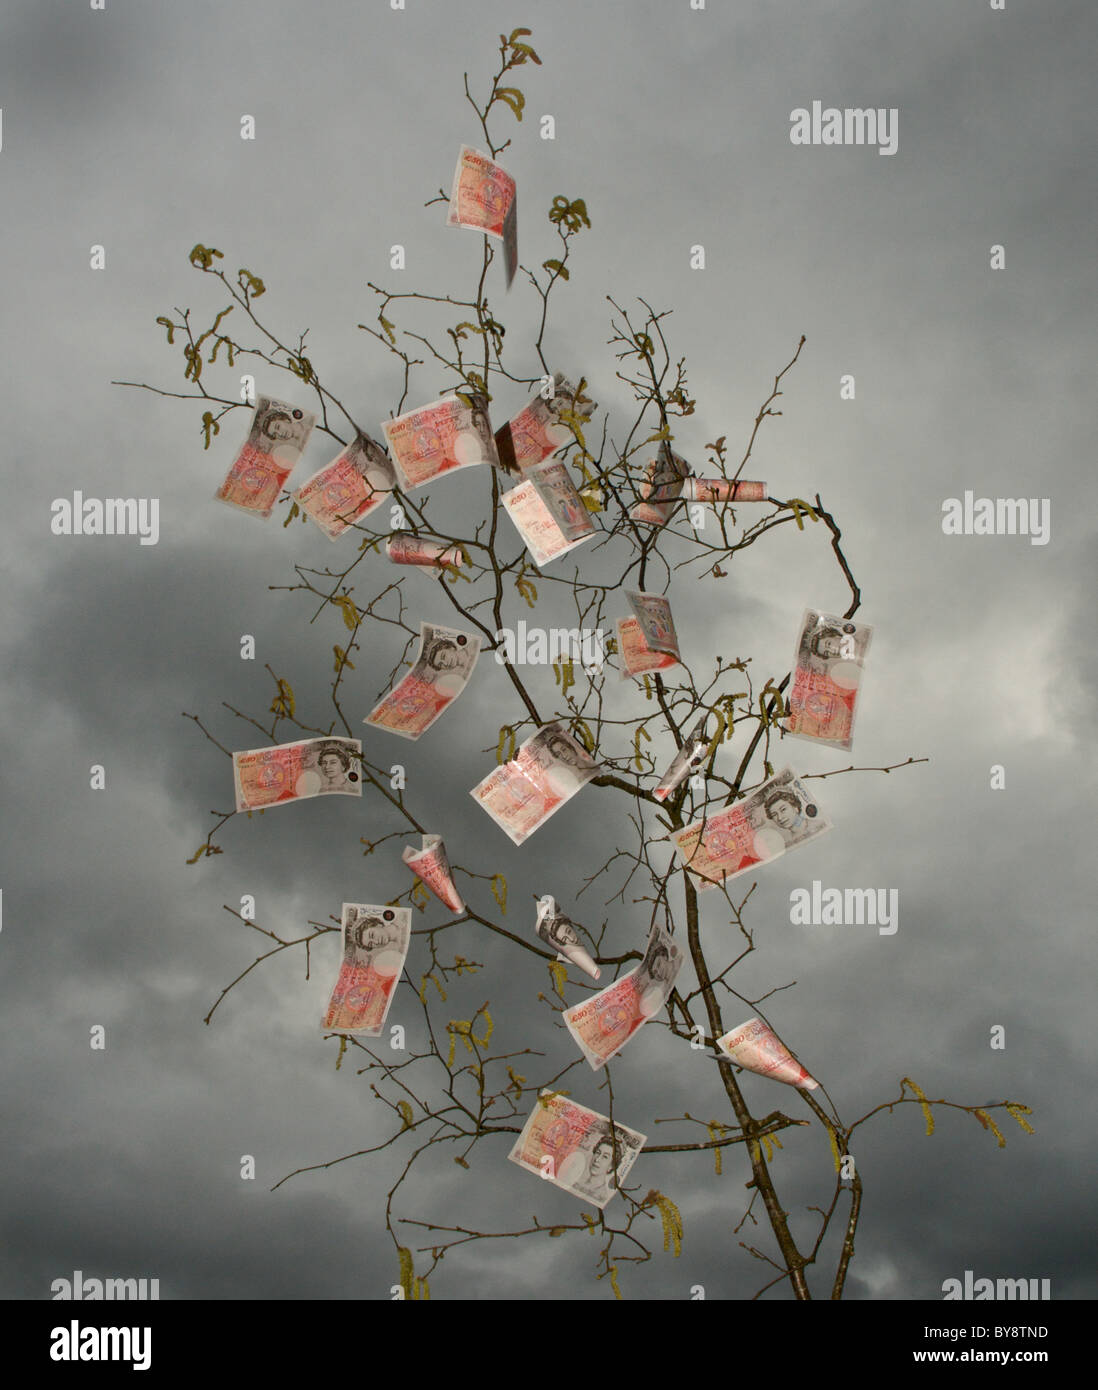 It is an old saying in the UK that money does not grow on trees - here it appears that it does. - Stock Image